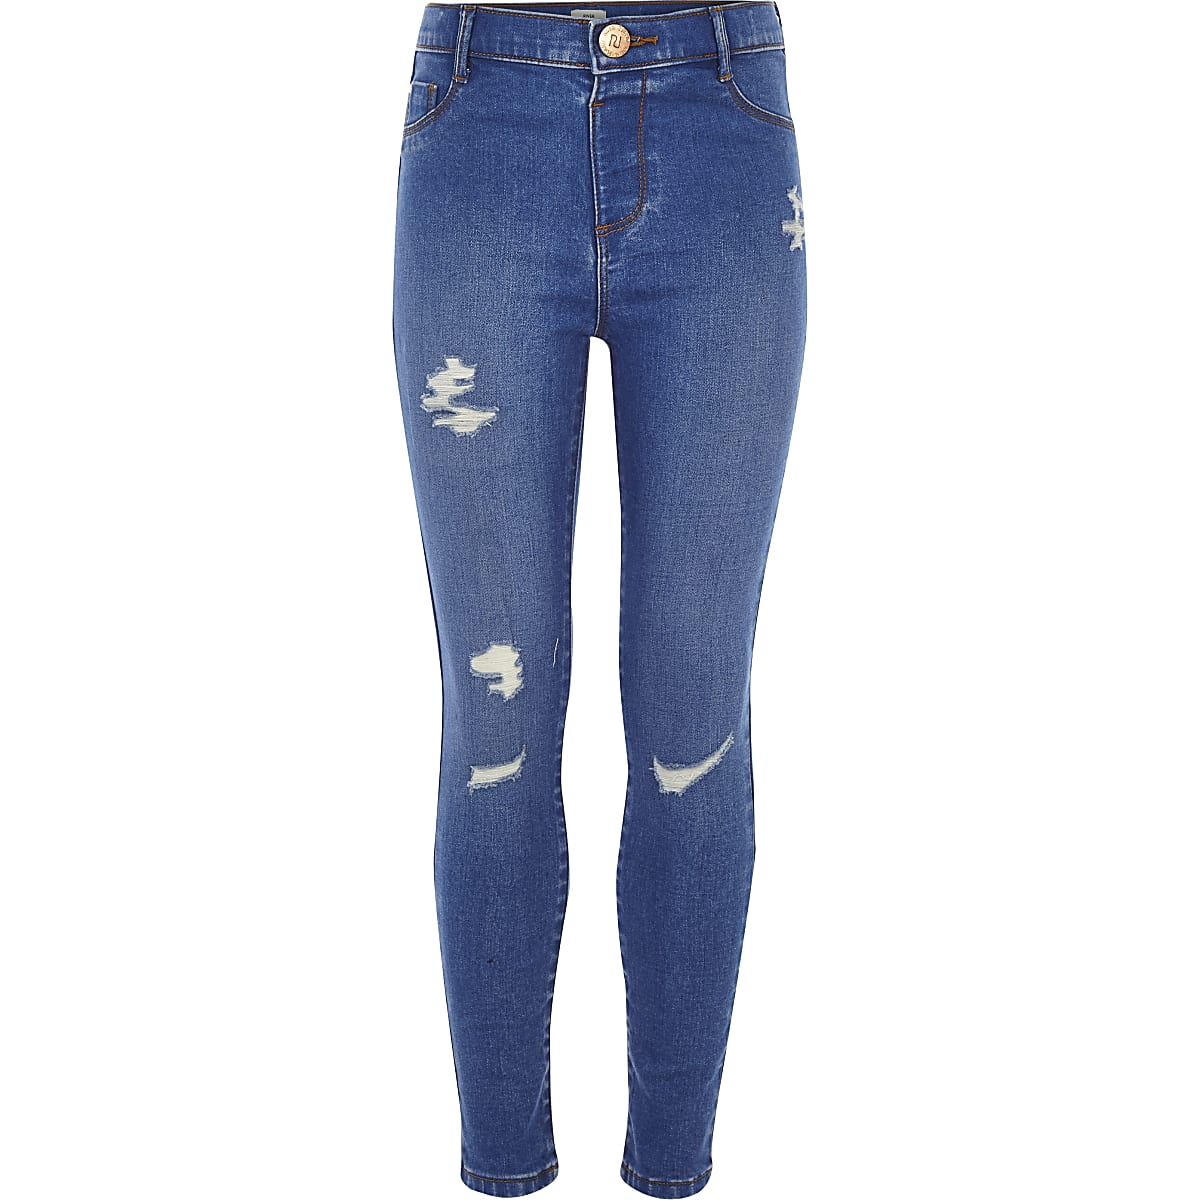 a0214214340c0 Girls blue Molly distressed mid rise jegging - Jeggings - Jeans - girls